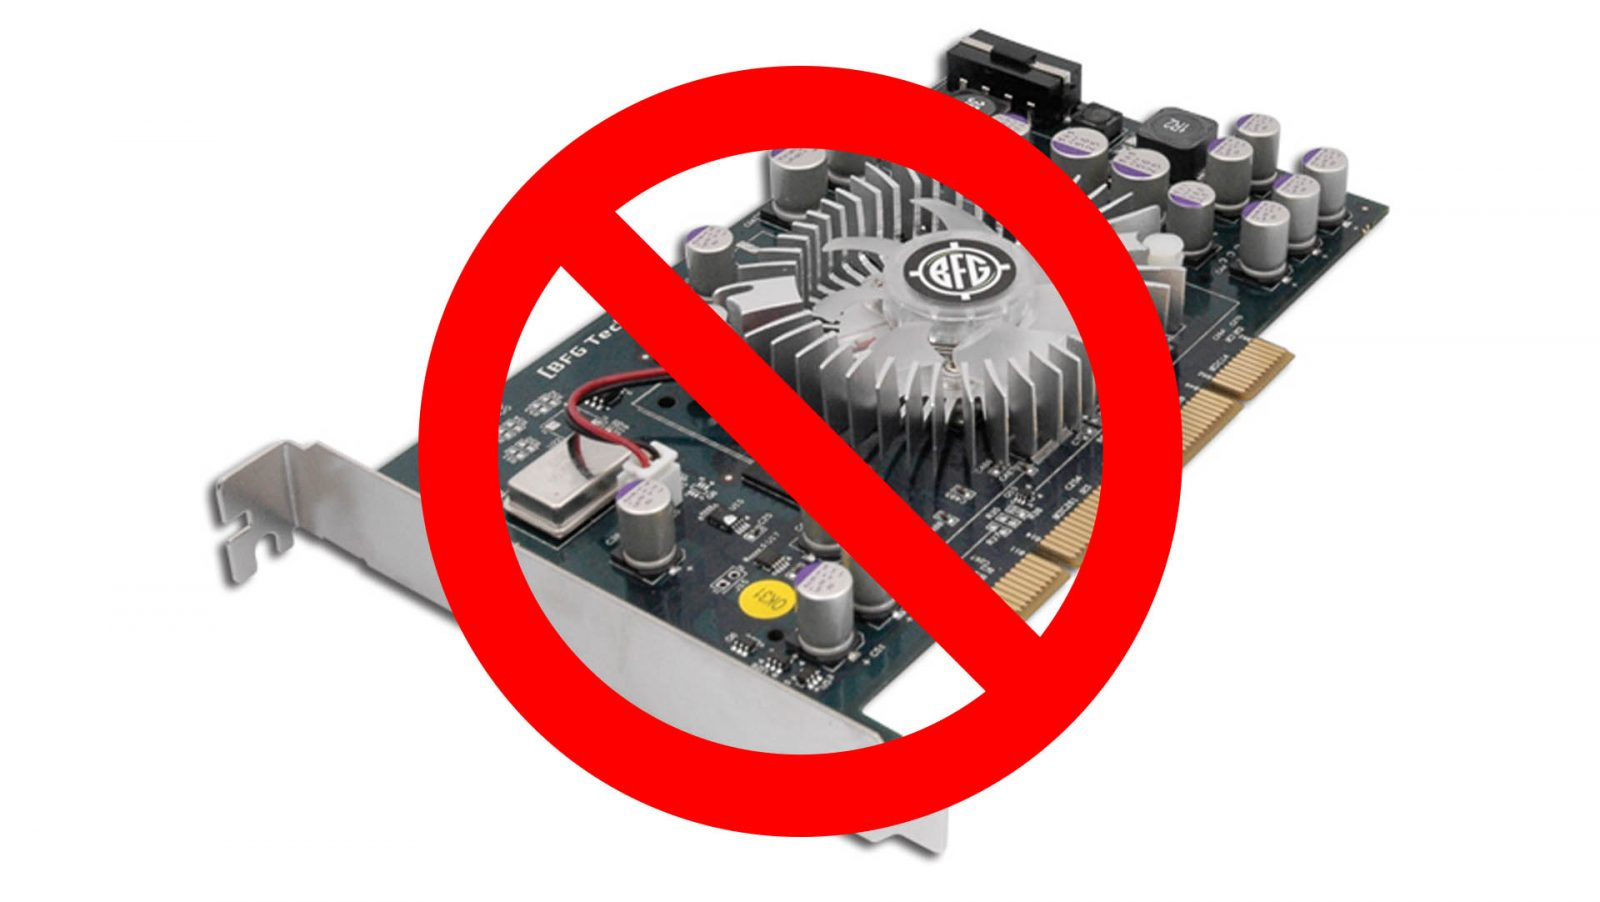 Which PC component has shipped 1.2bn units since the '80s? Hint: it ain't PhysX